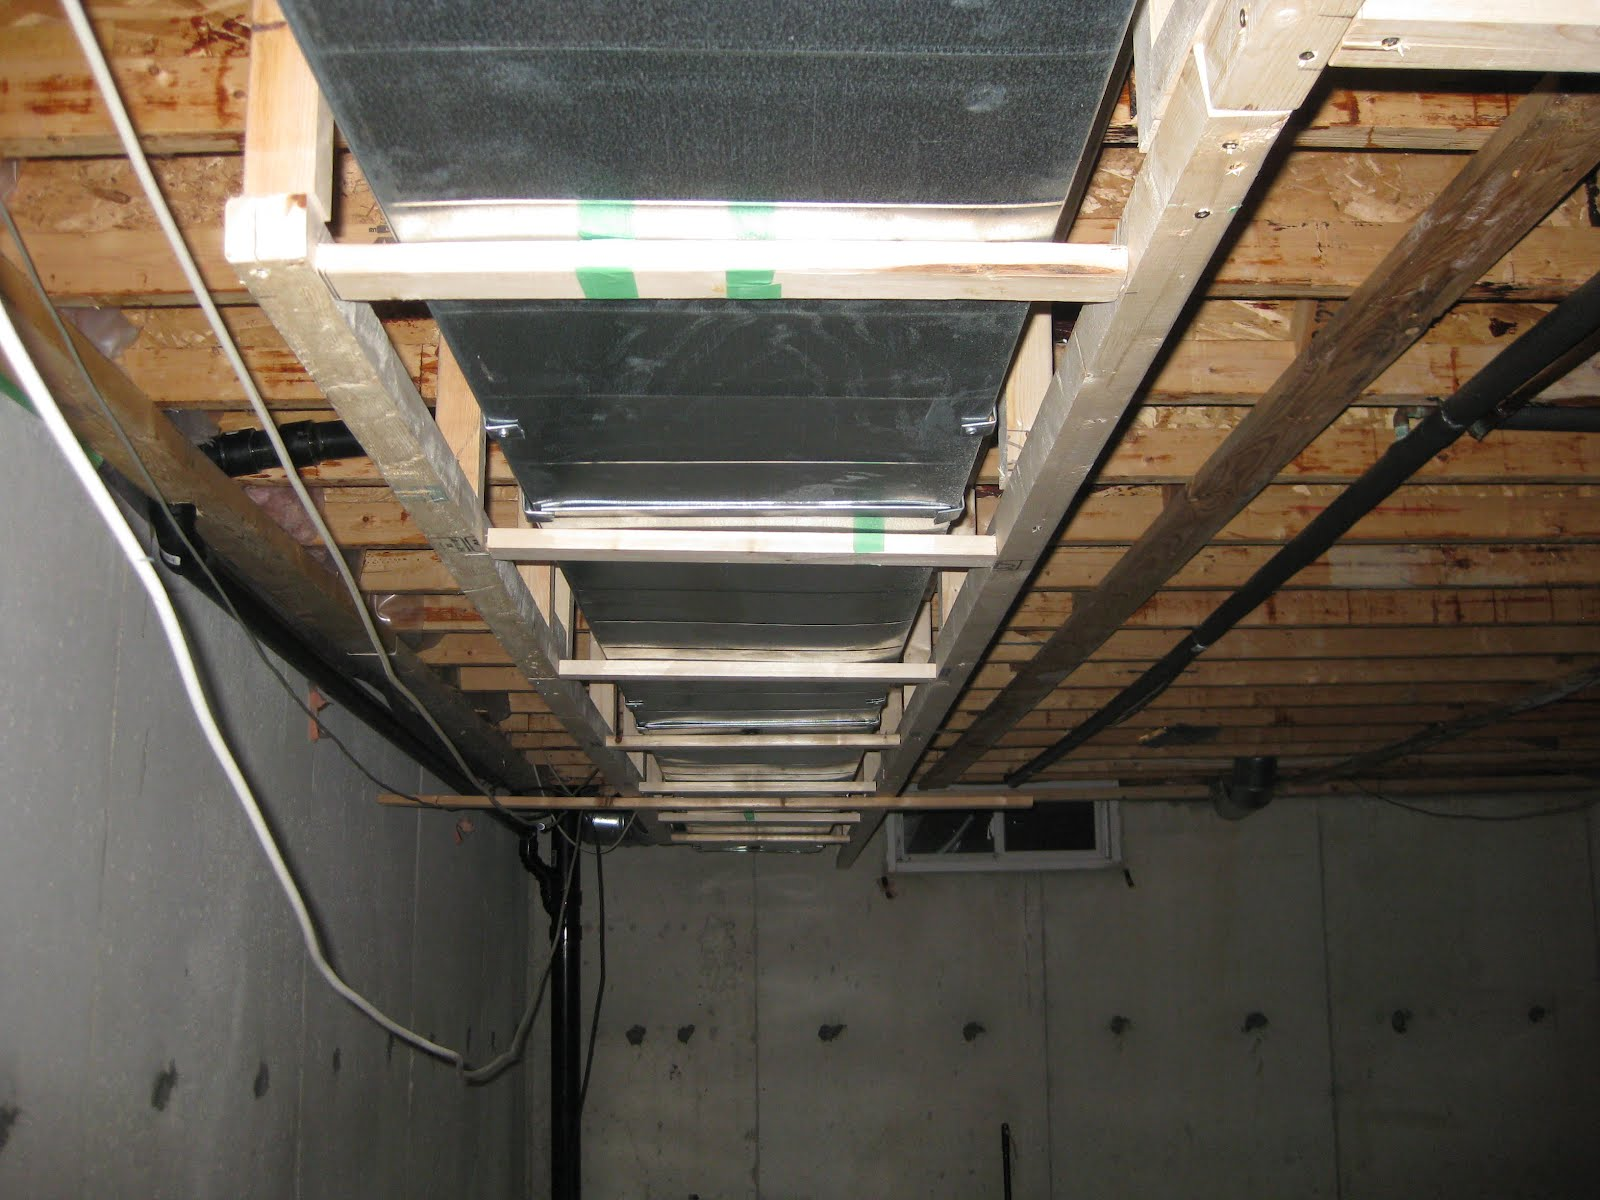 March 27 - 28 Ductwork framing started ! & Basement Project: March 27 - 28 Ductwork framing started !